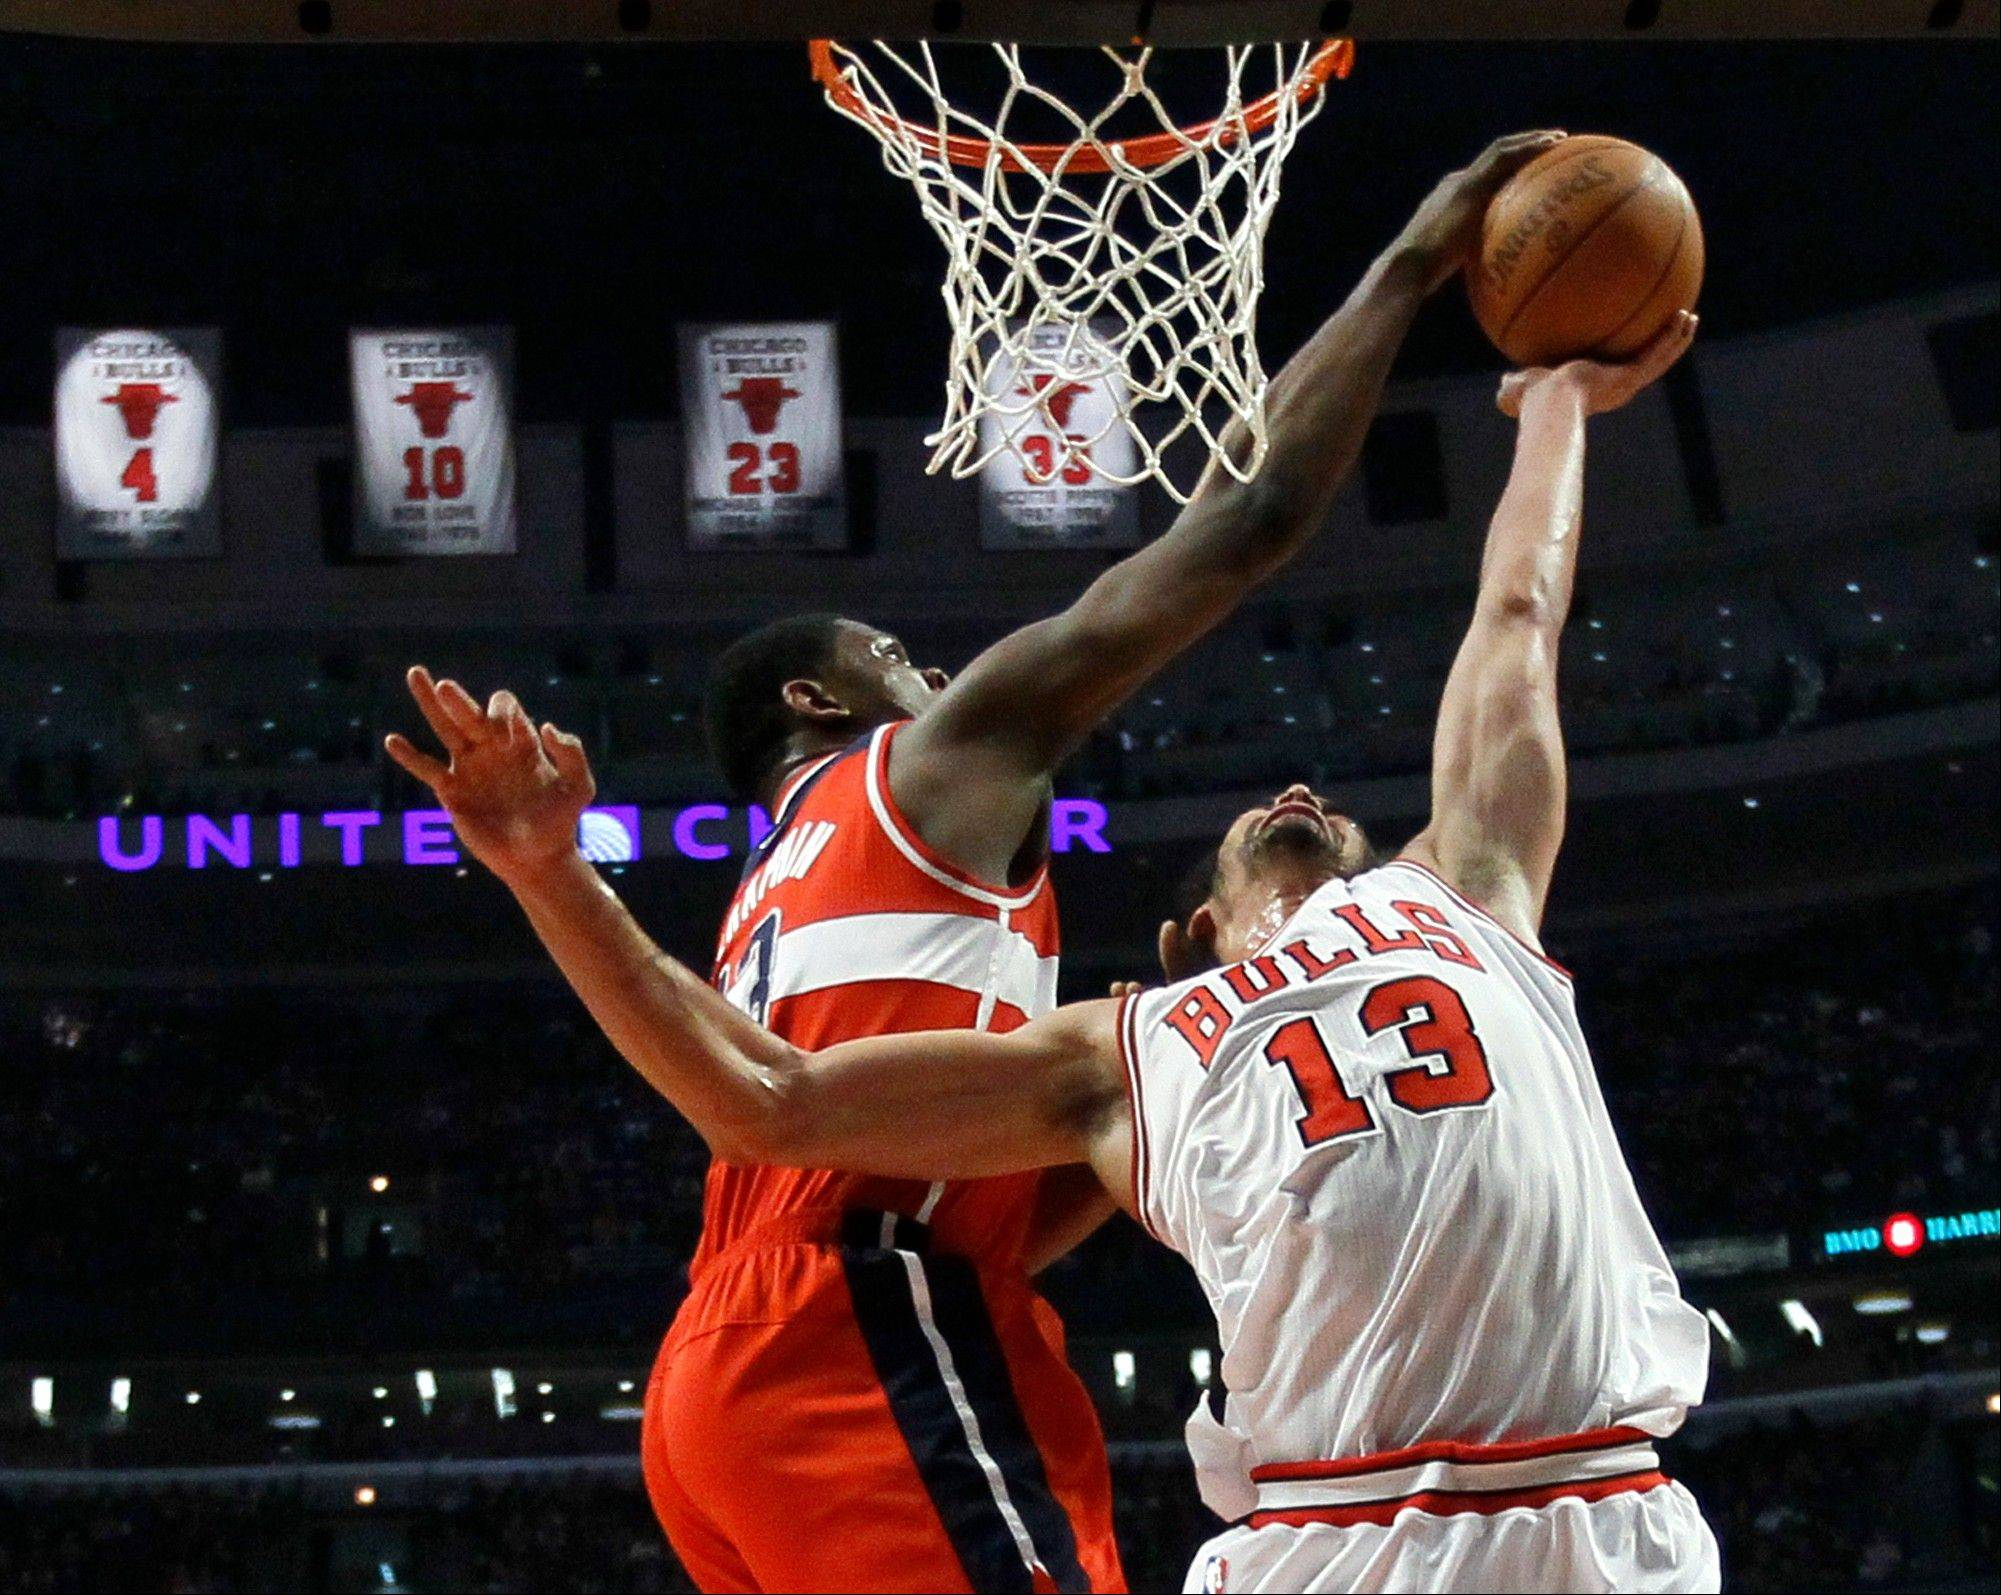 Washington Wizards forward Kevin Seraphin (13) blocks the shot of Chicago Bulls center Joakim Noah, during the first half of an NBA basketball game Monday, April 16, 2012, in Chicago.